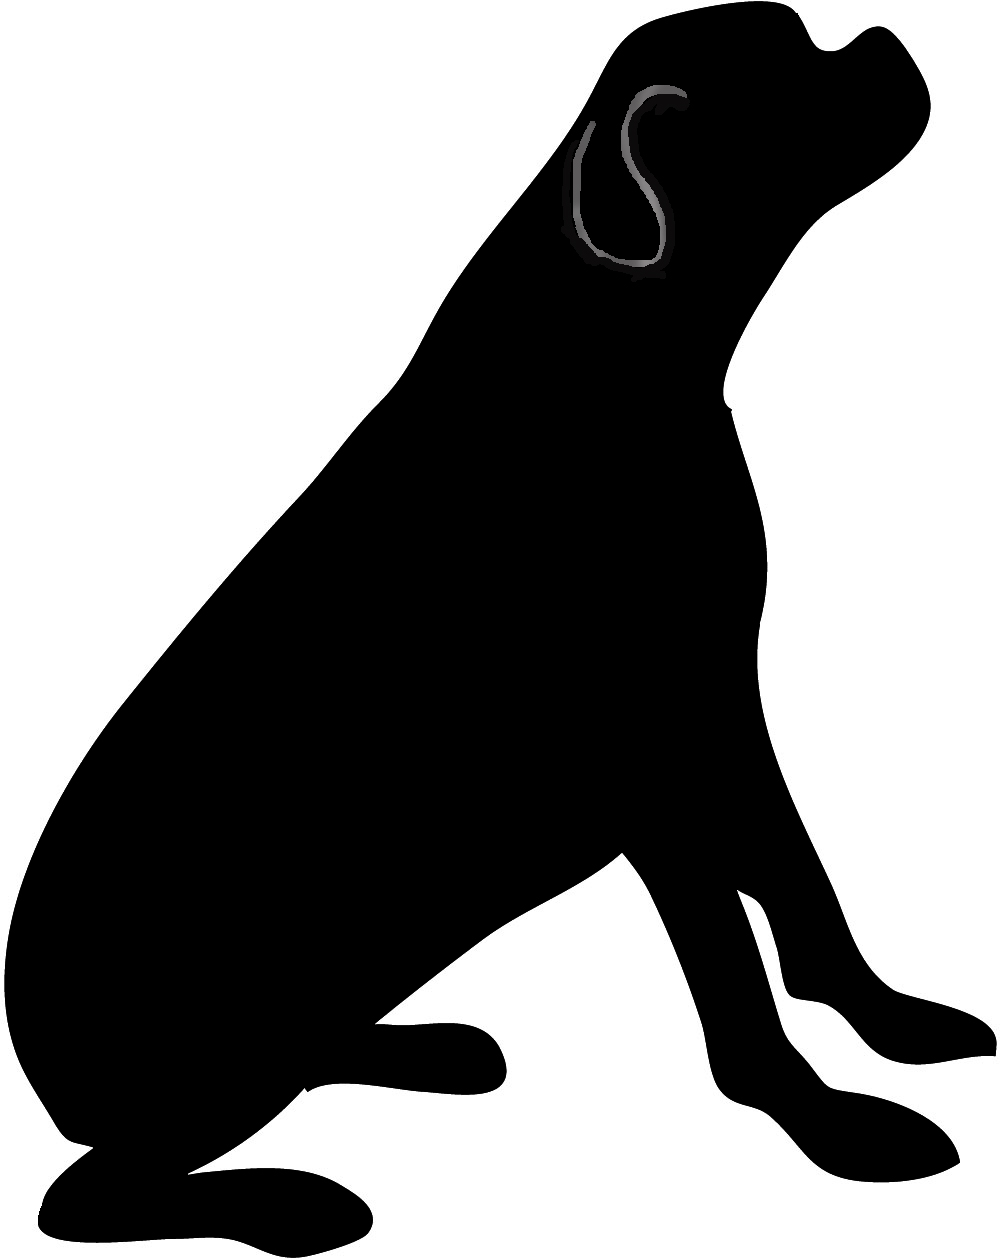 dog silhouette black white